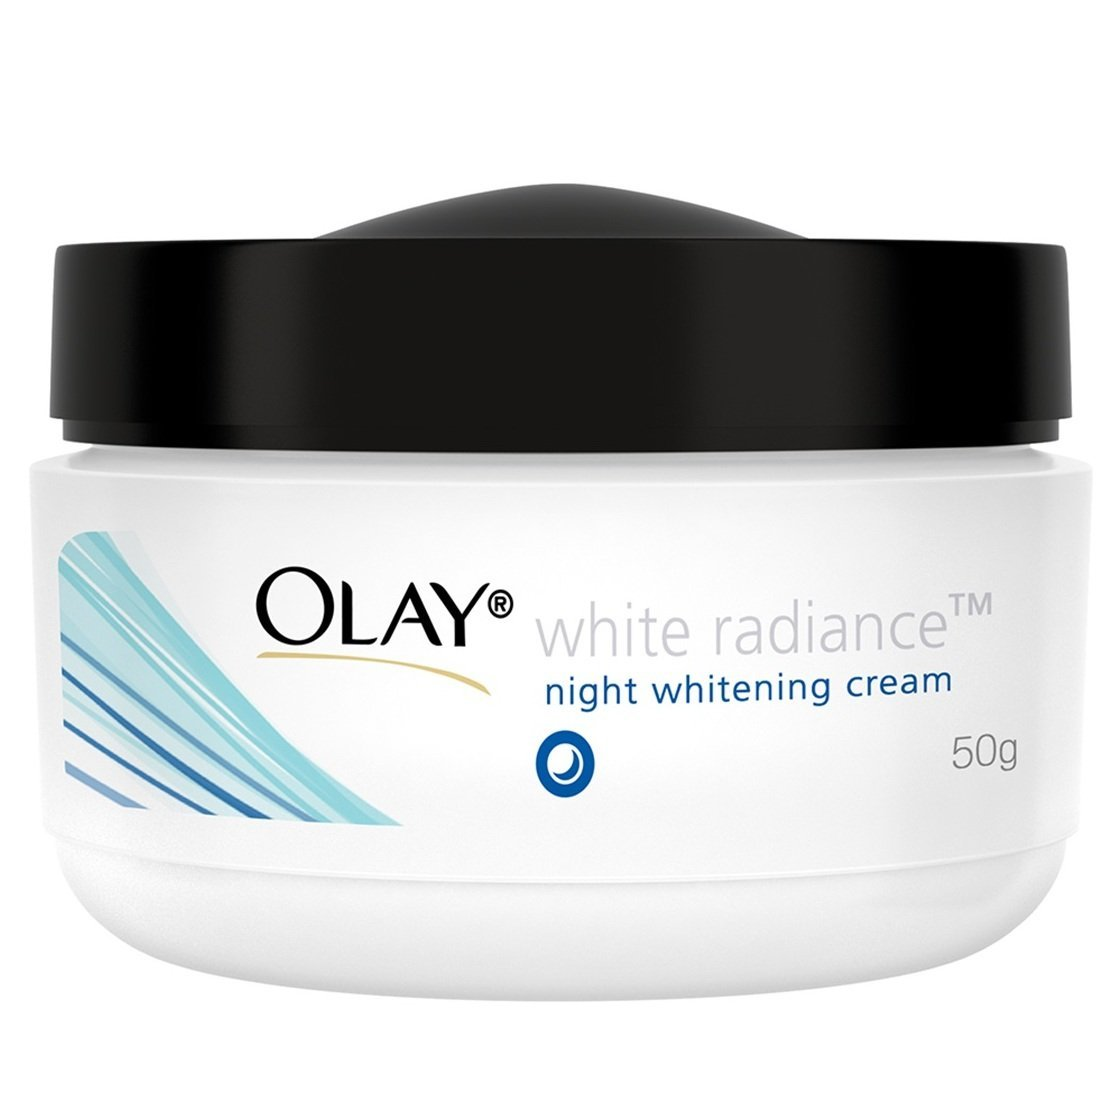 Olay White Radiance Night Whitening Cream 50g